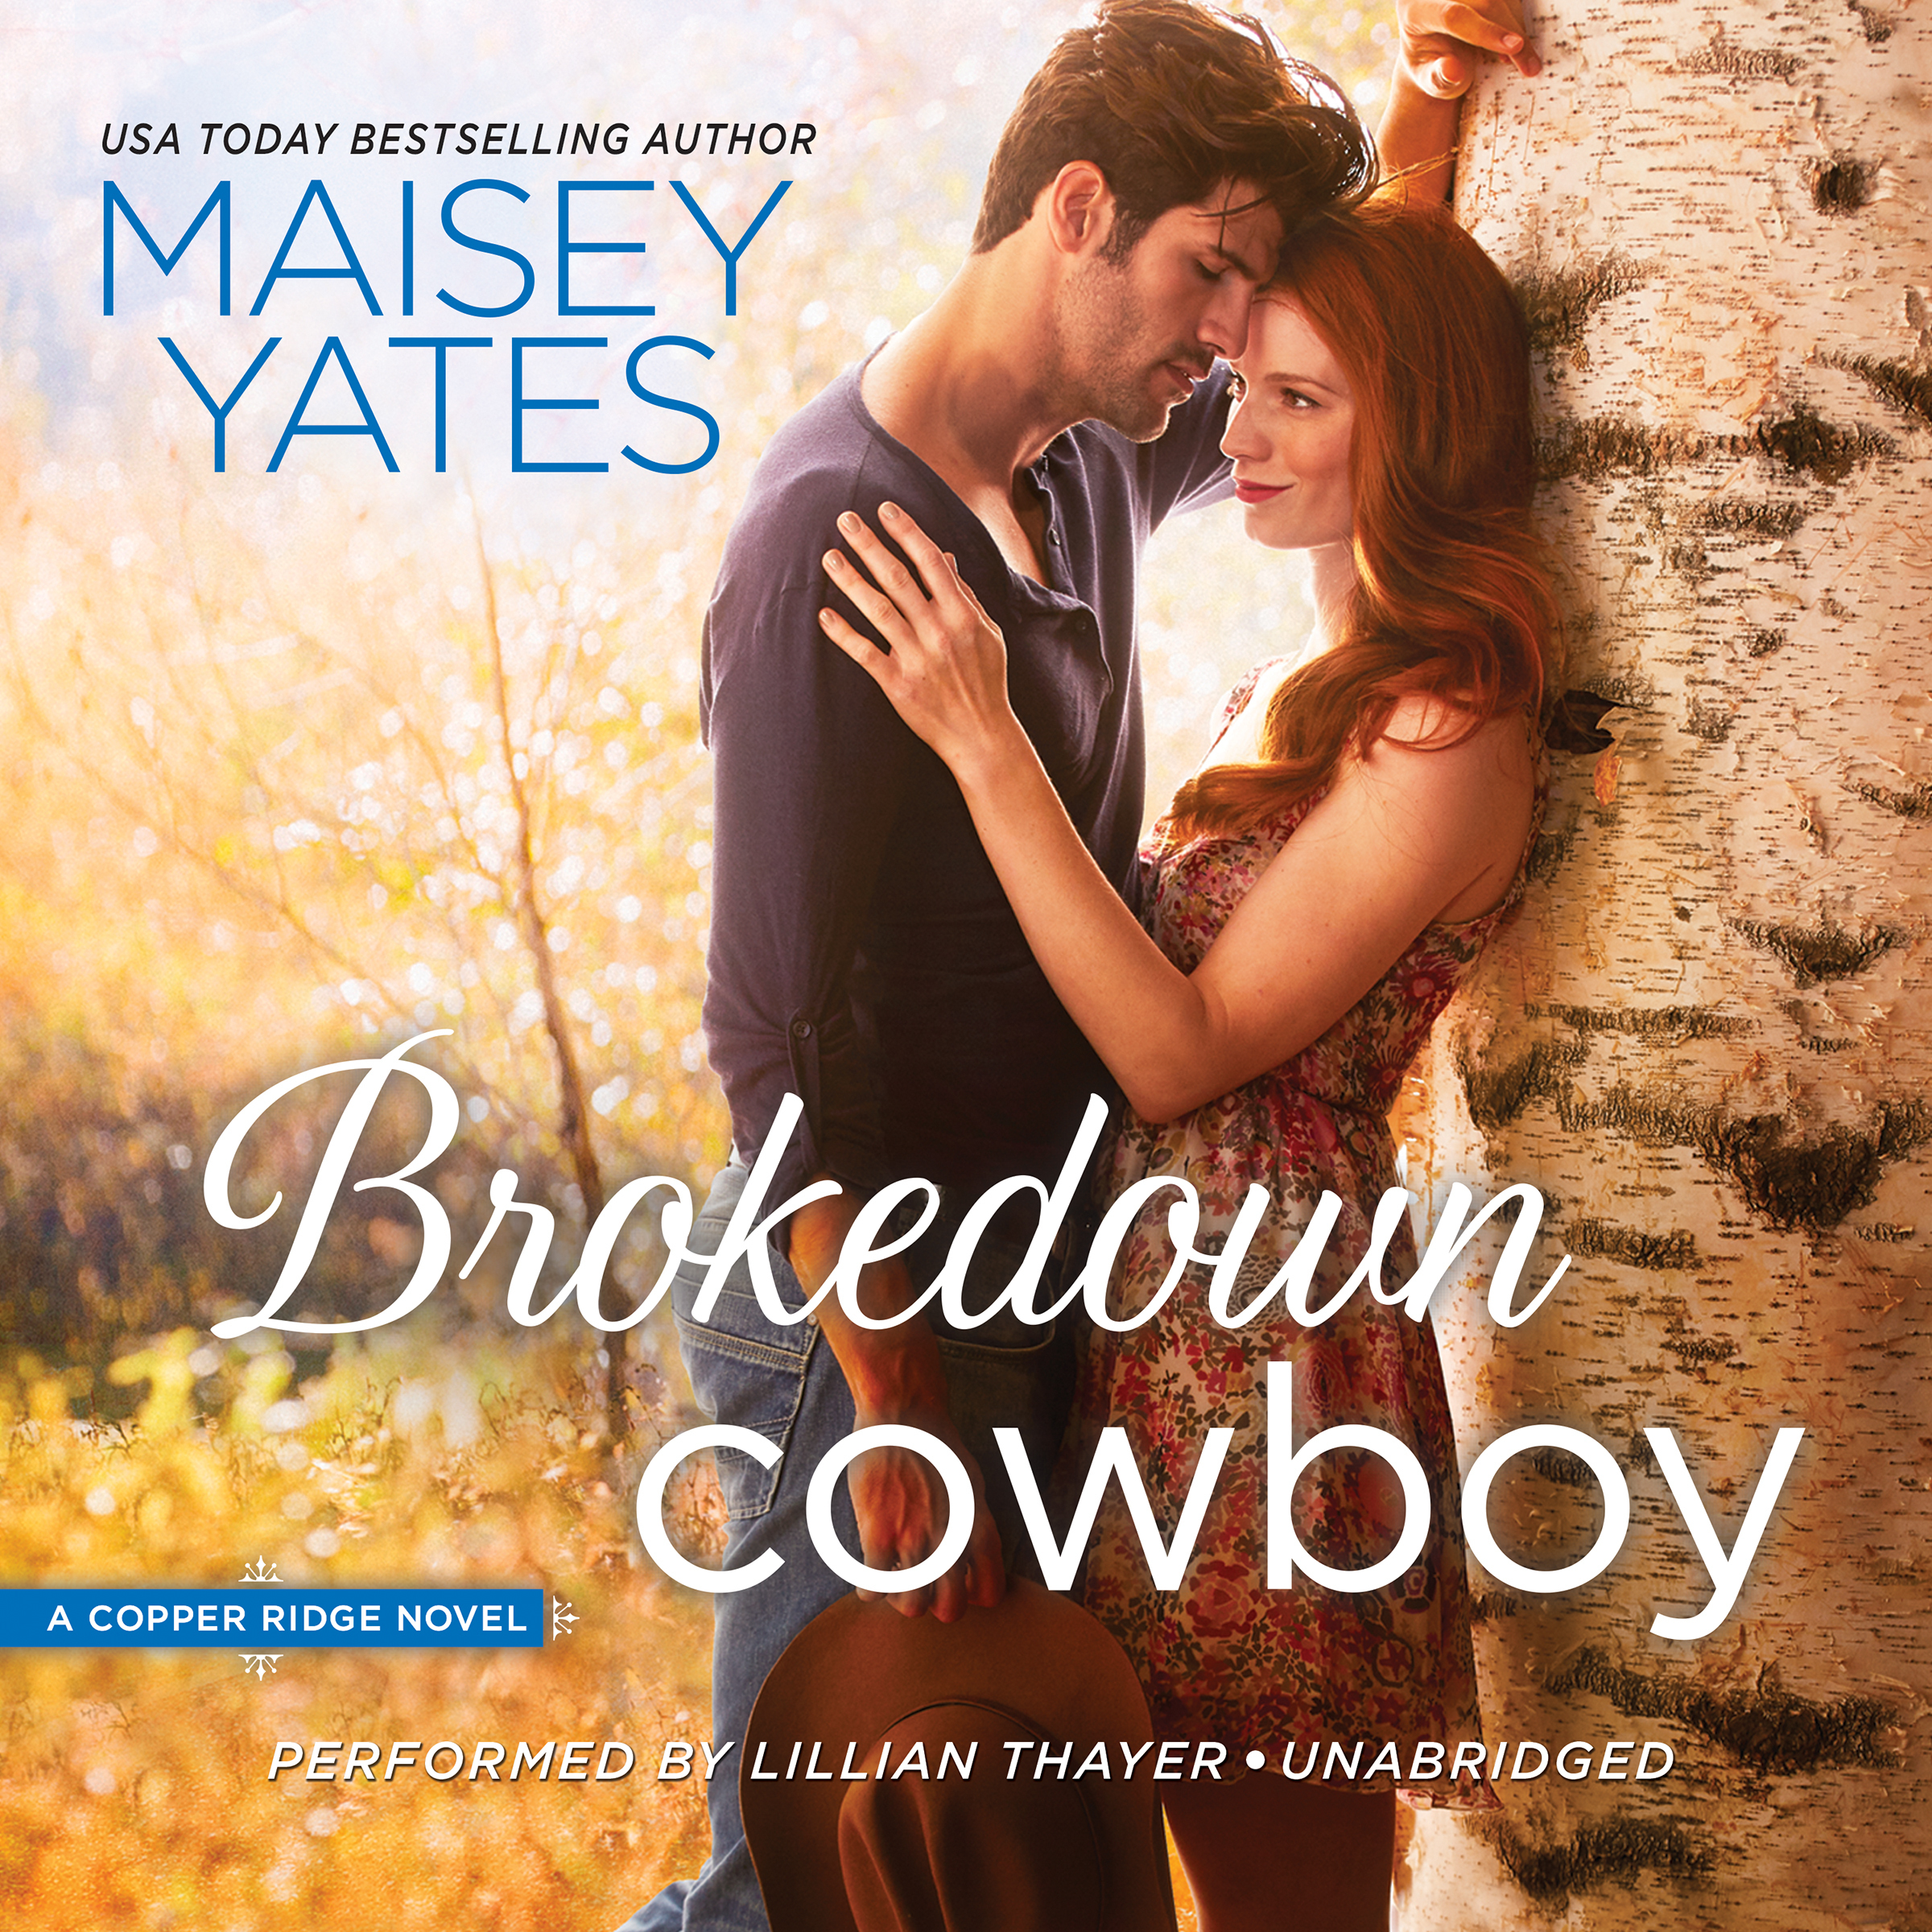 Printable Brokedown Cowboy Audiobook Cover Art